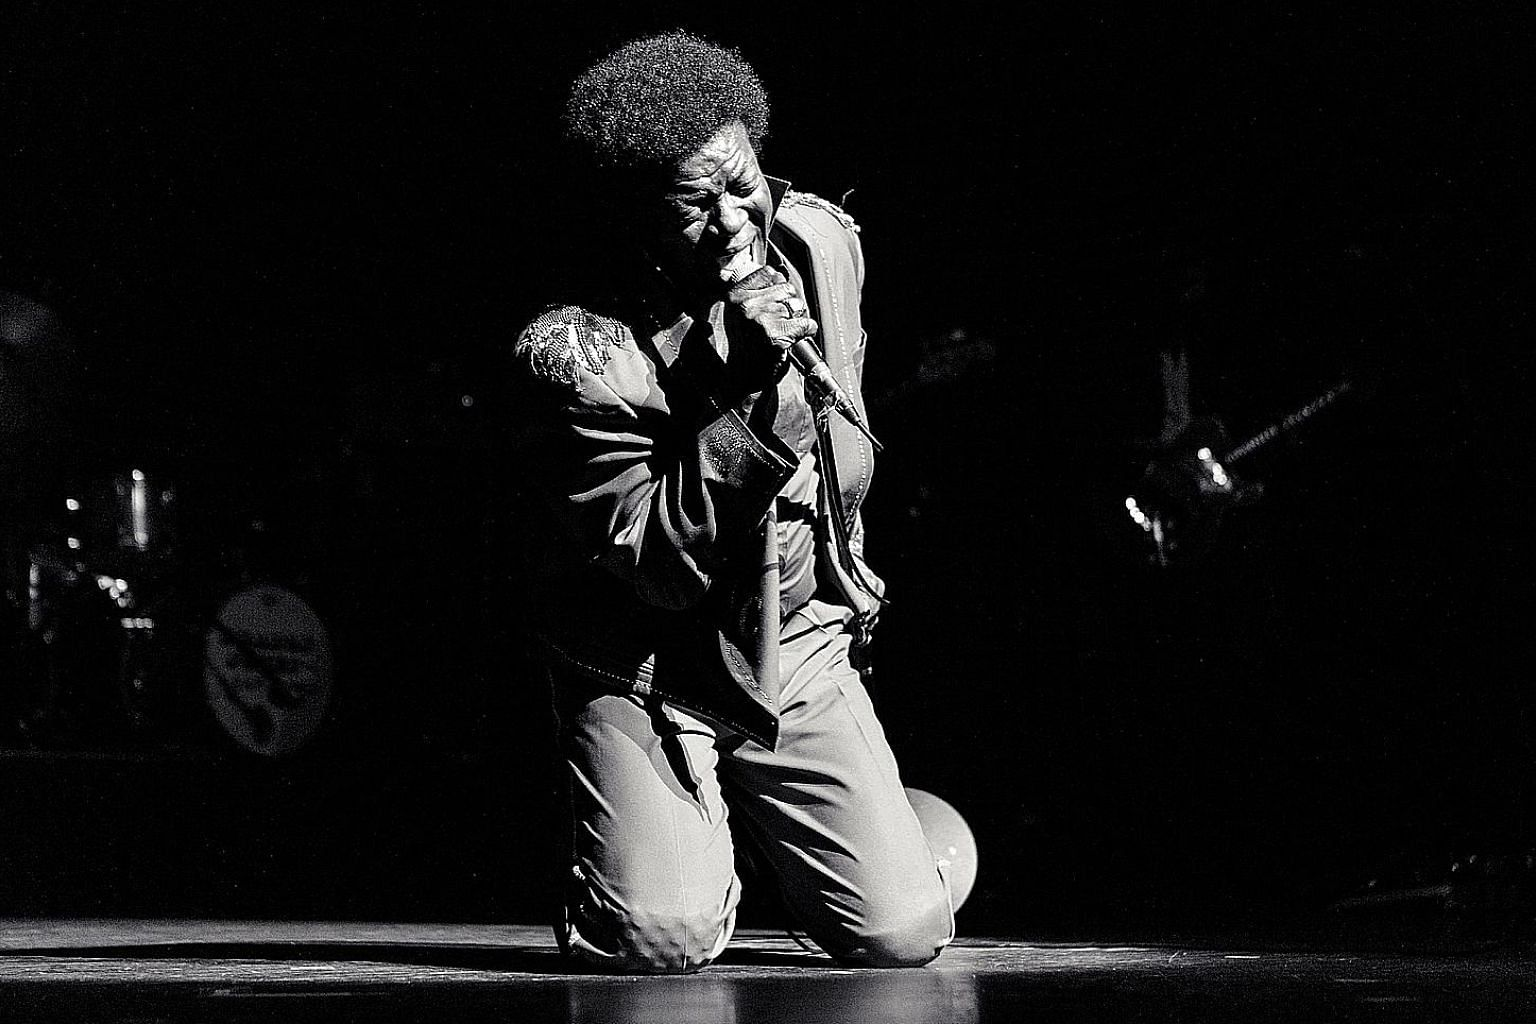 Charles Bradley, whose brief recording career started only in 2011, died of stomach cancer last year.